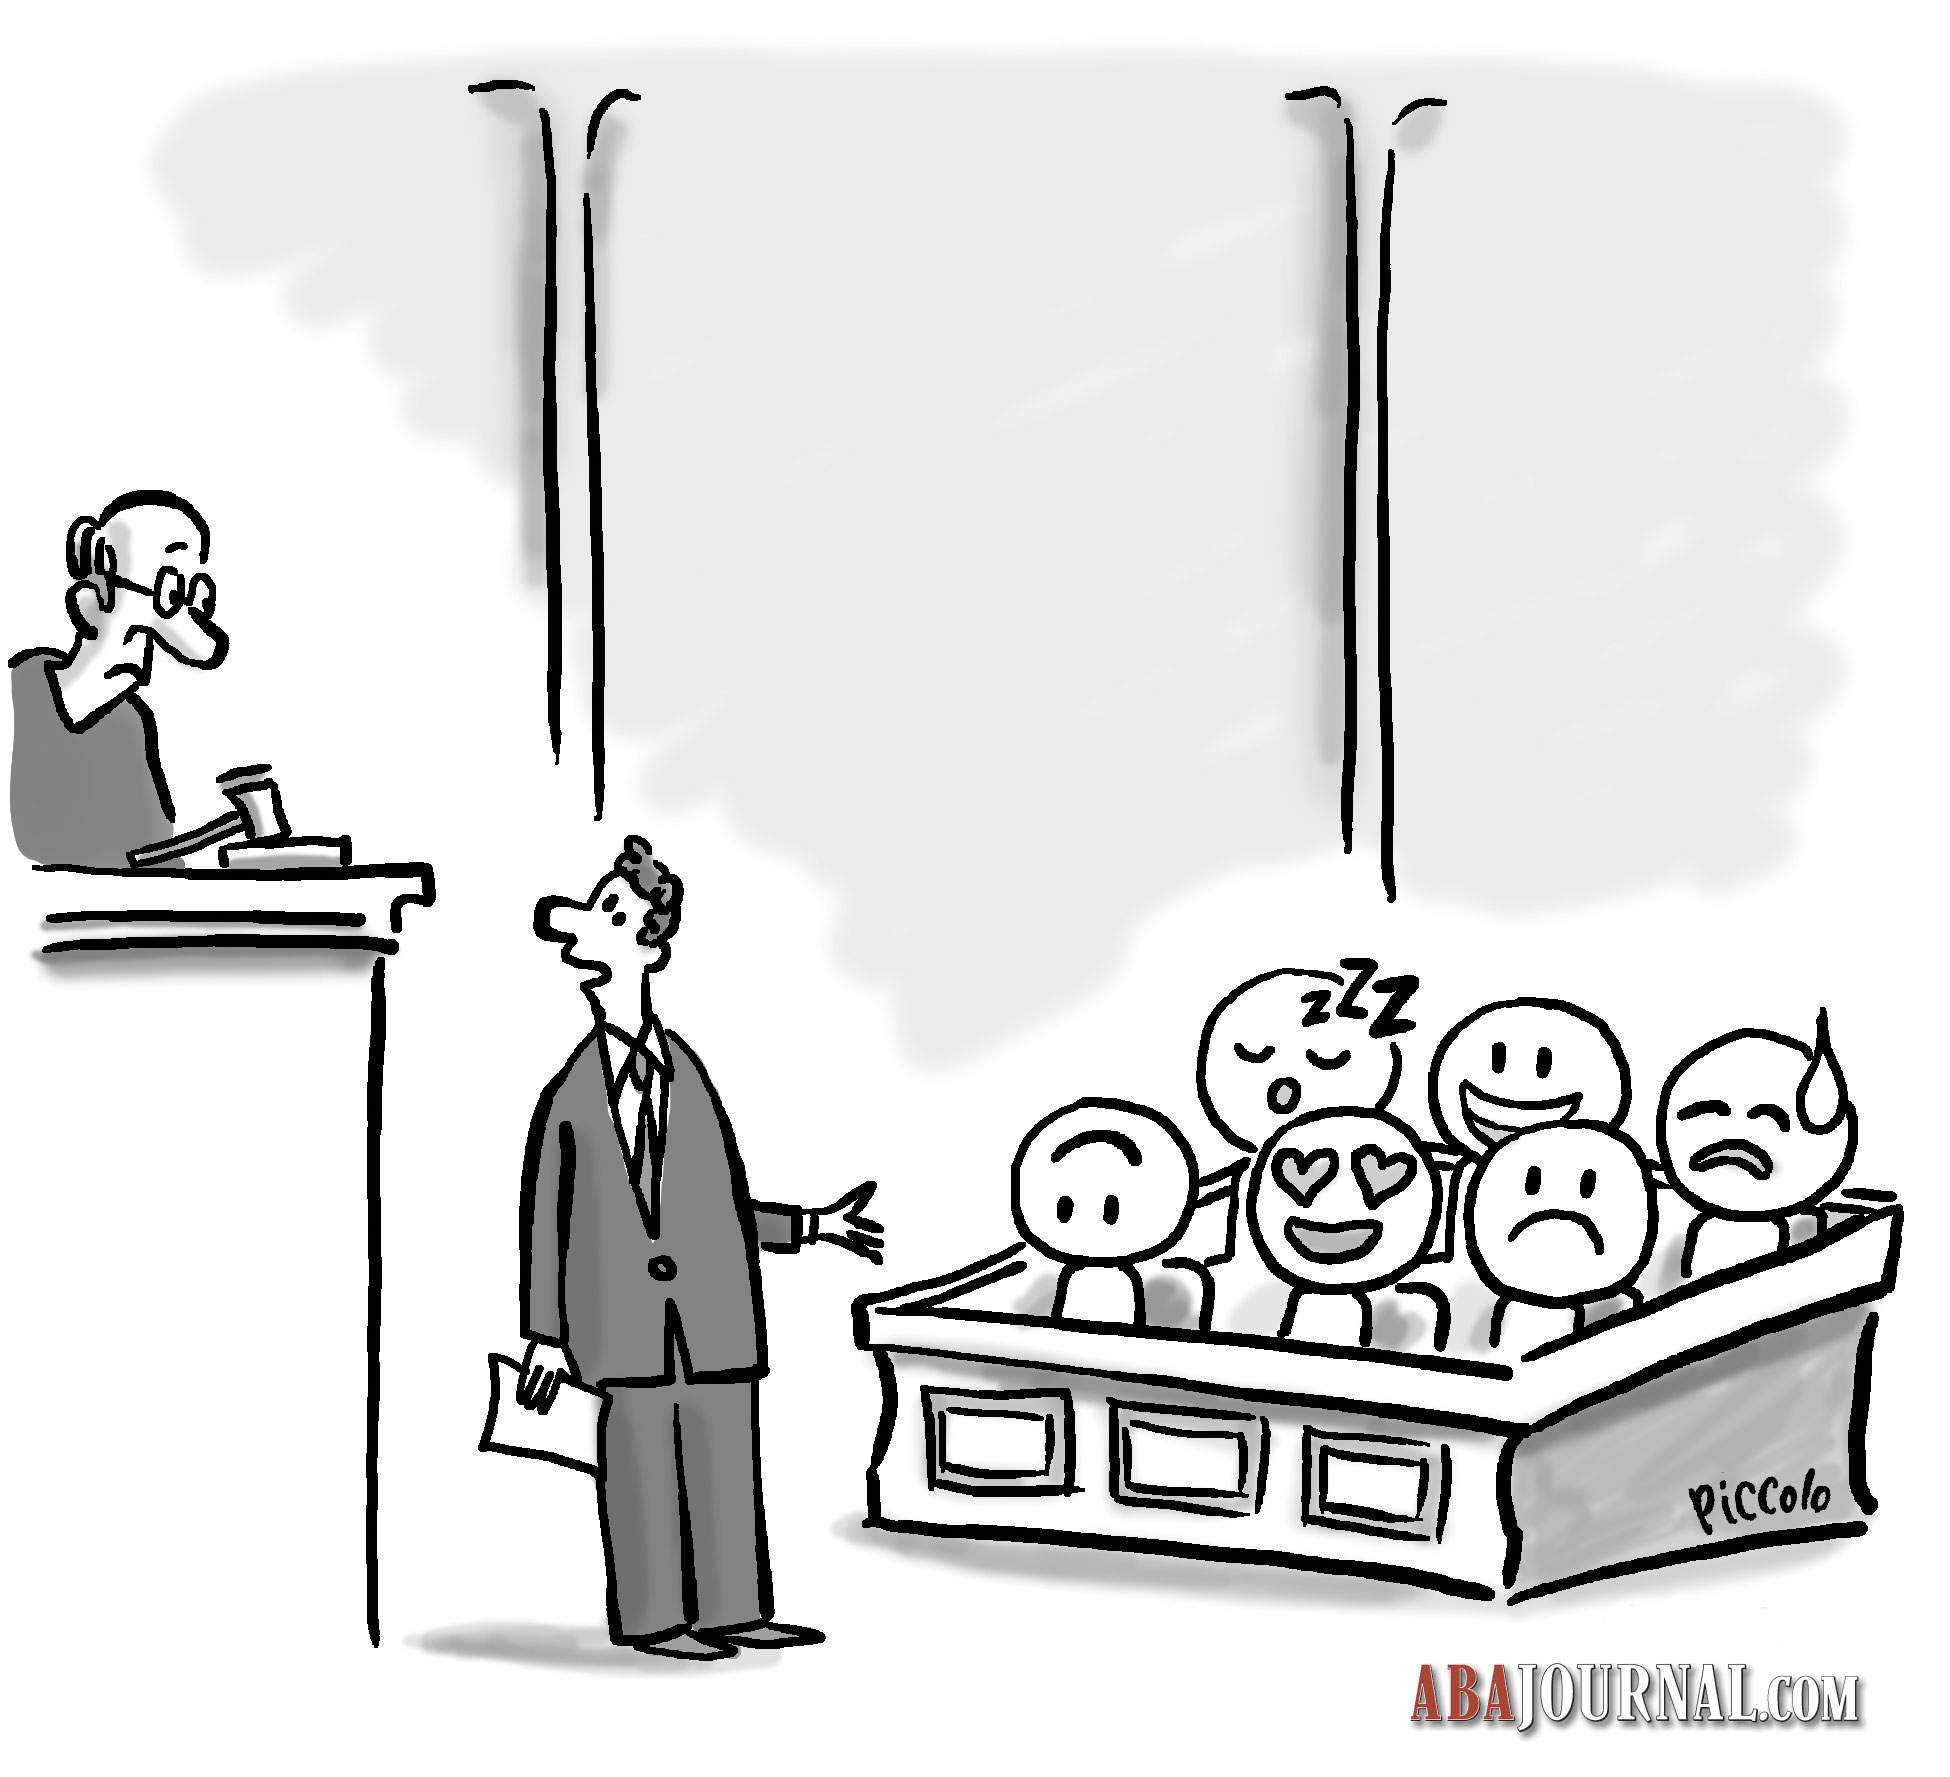 Cartoon Caption: 3 wishes from this lawyer genie might come at a price picture royalty free download